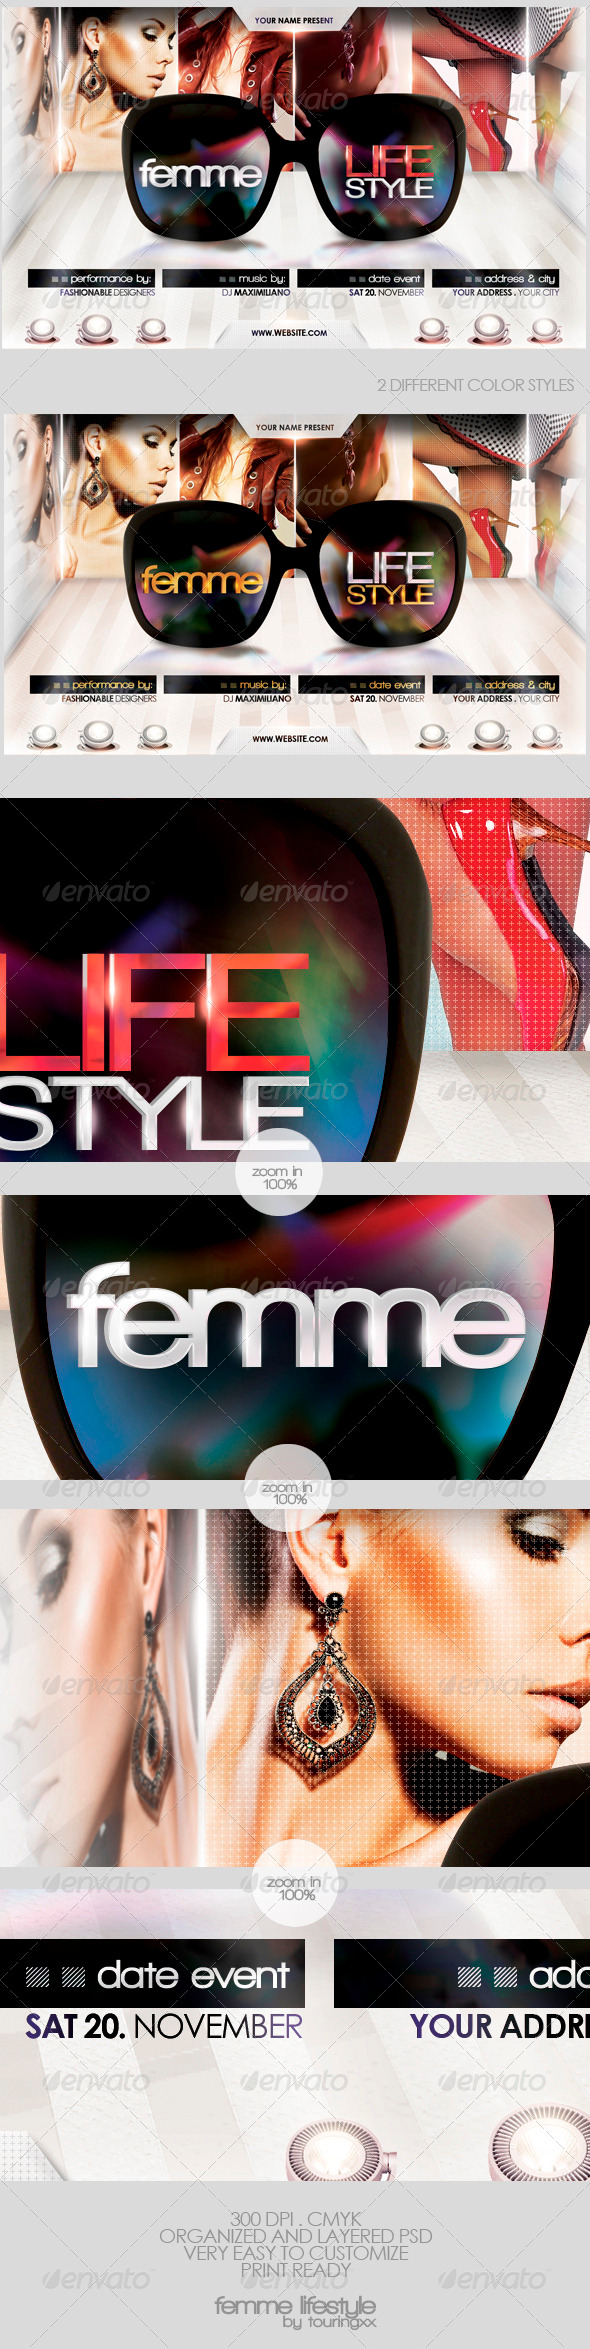 Femme Lifestyle Flyer Template - Clubs & Parties Events